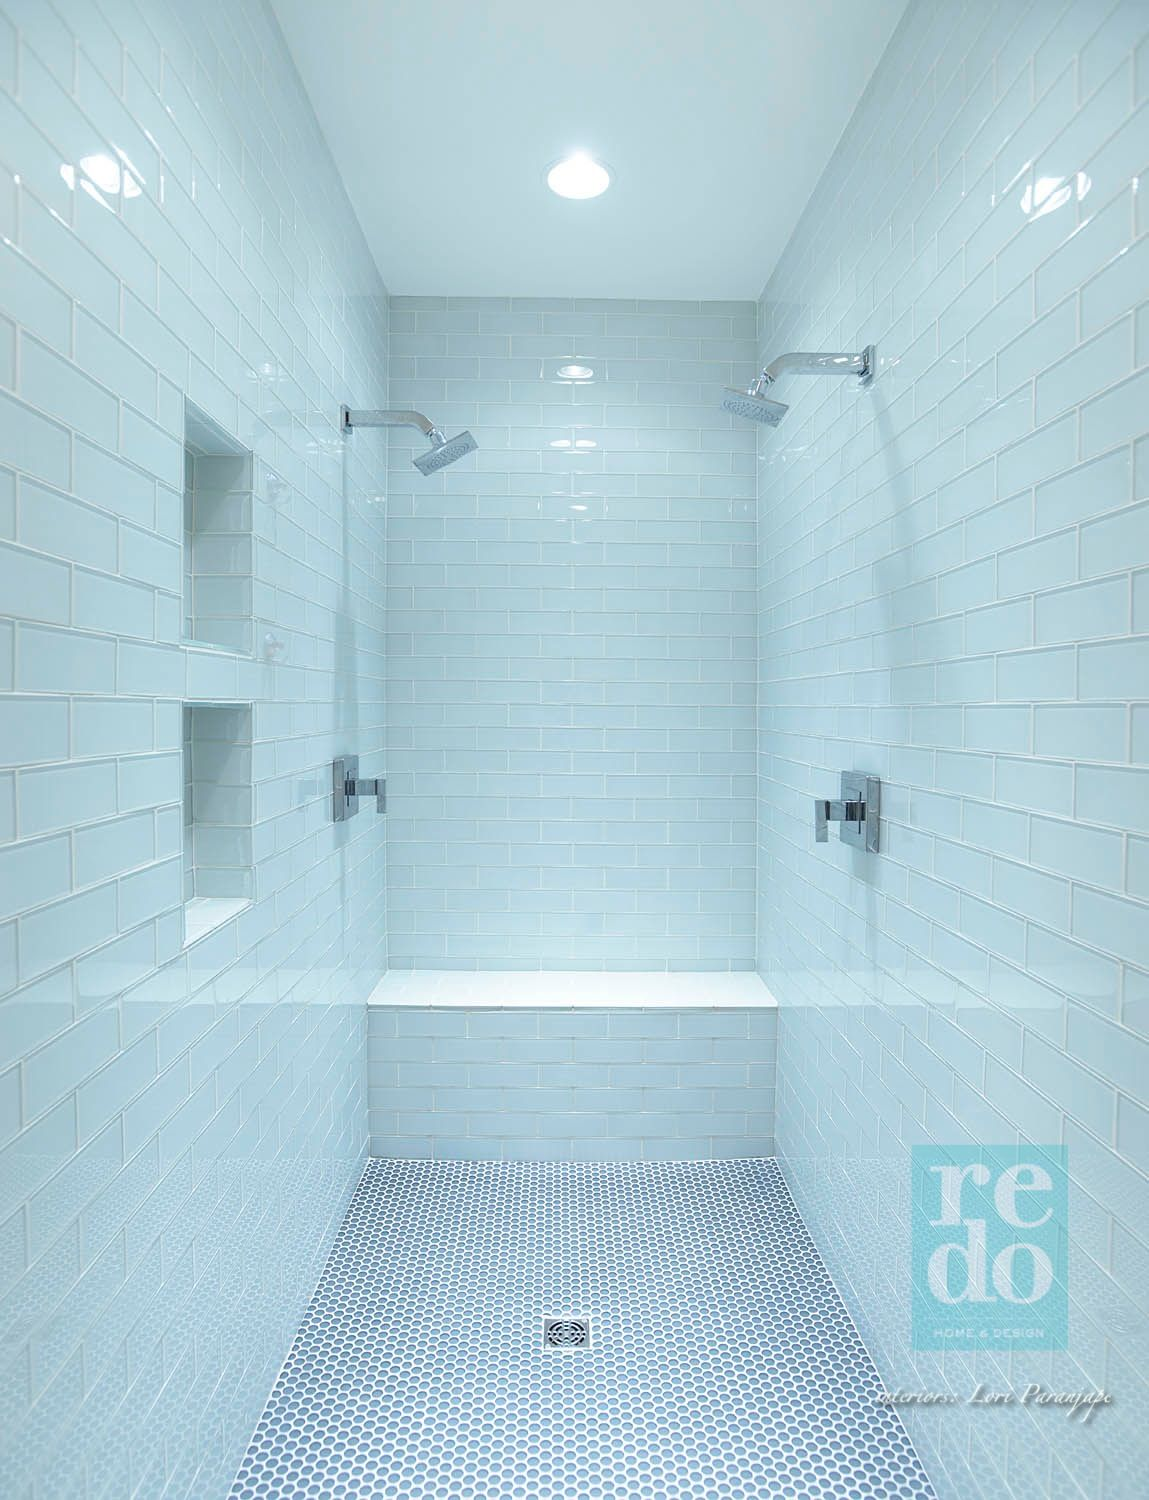 Shower for two: http://blog.redoyourhouse.com/meetmeinthebathtub ...